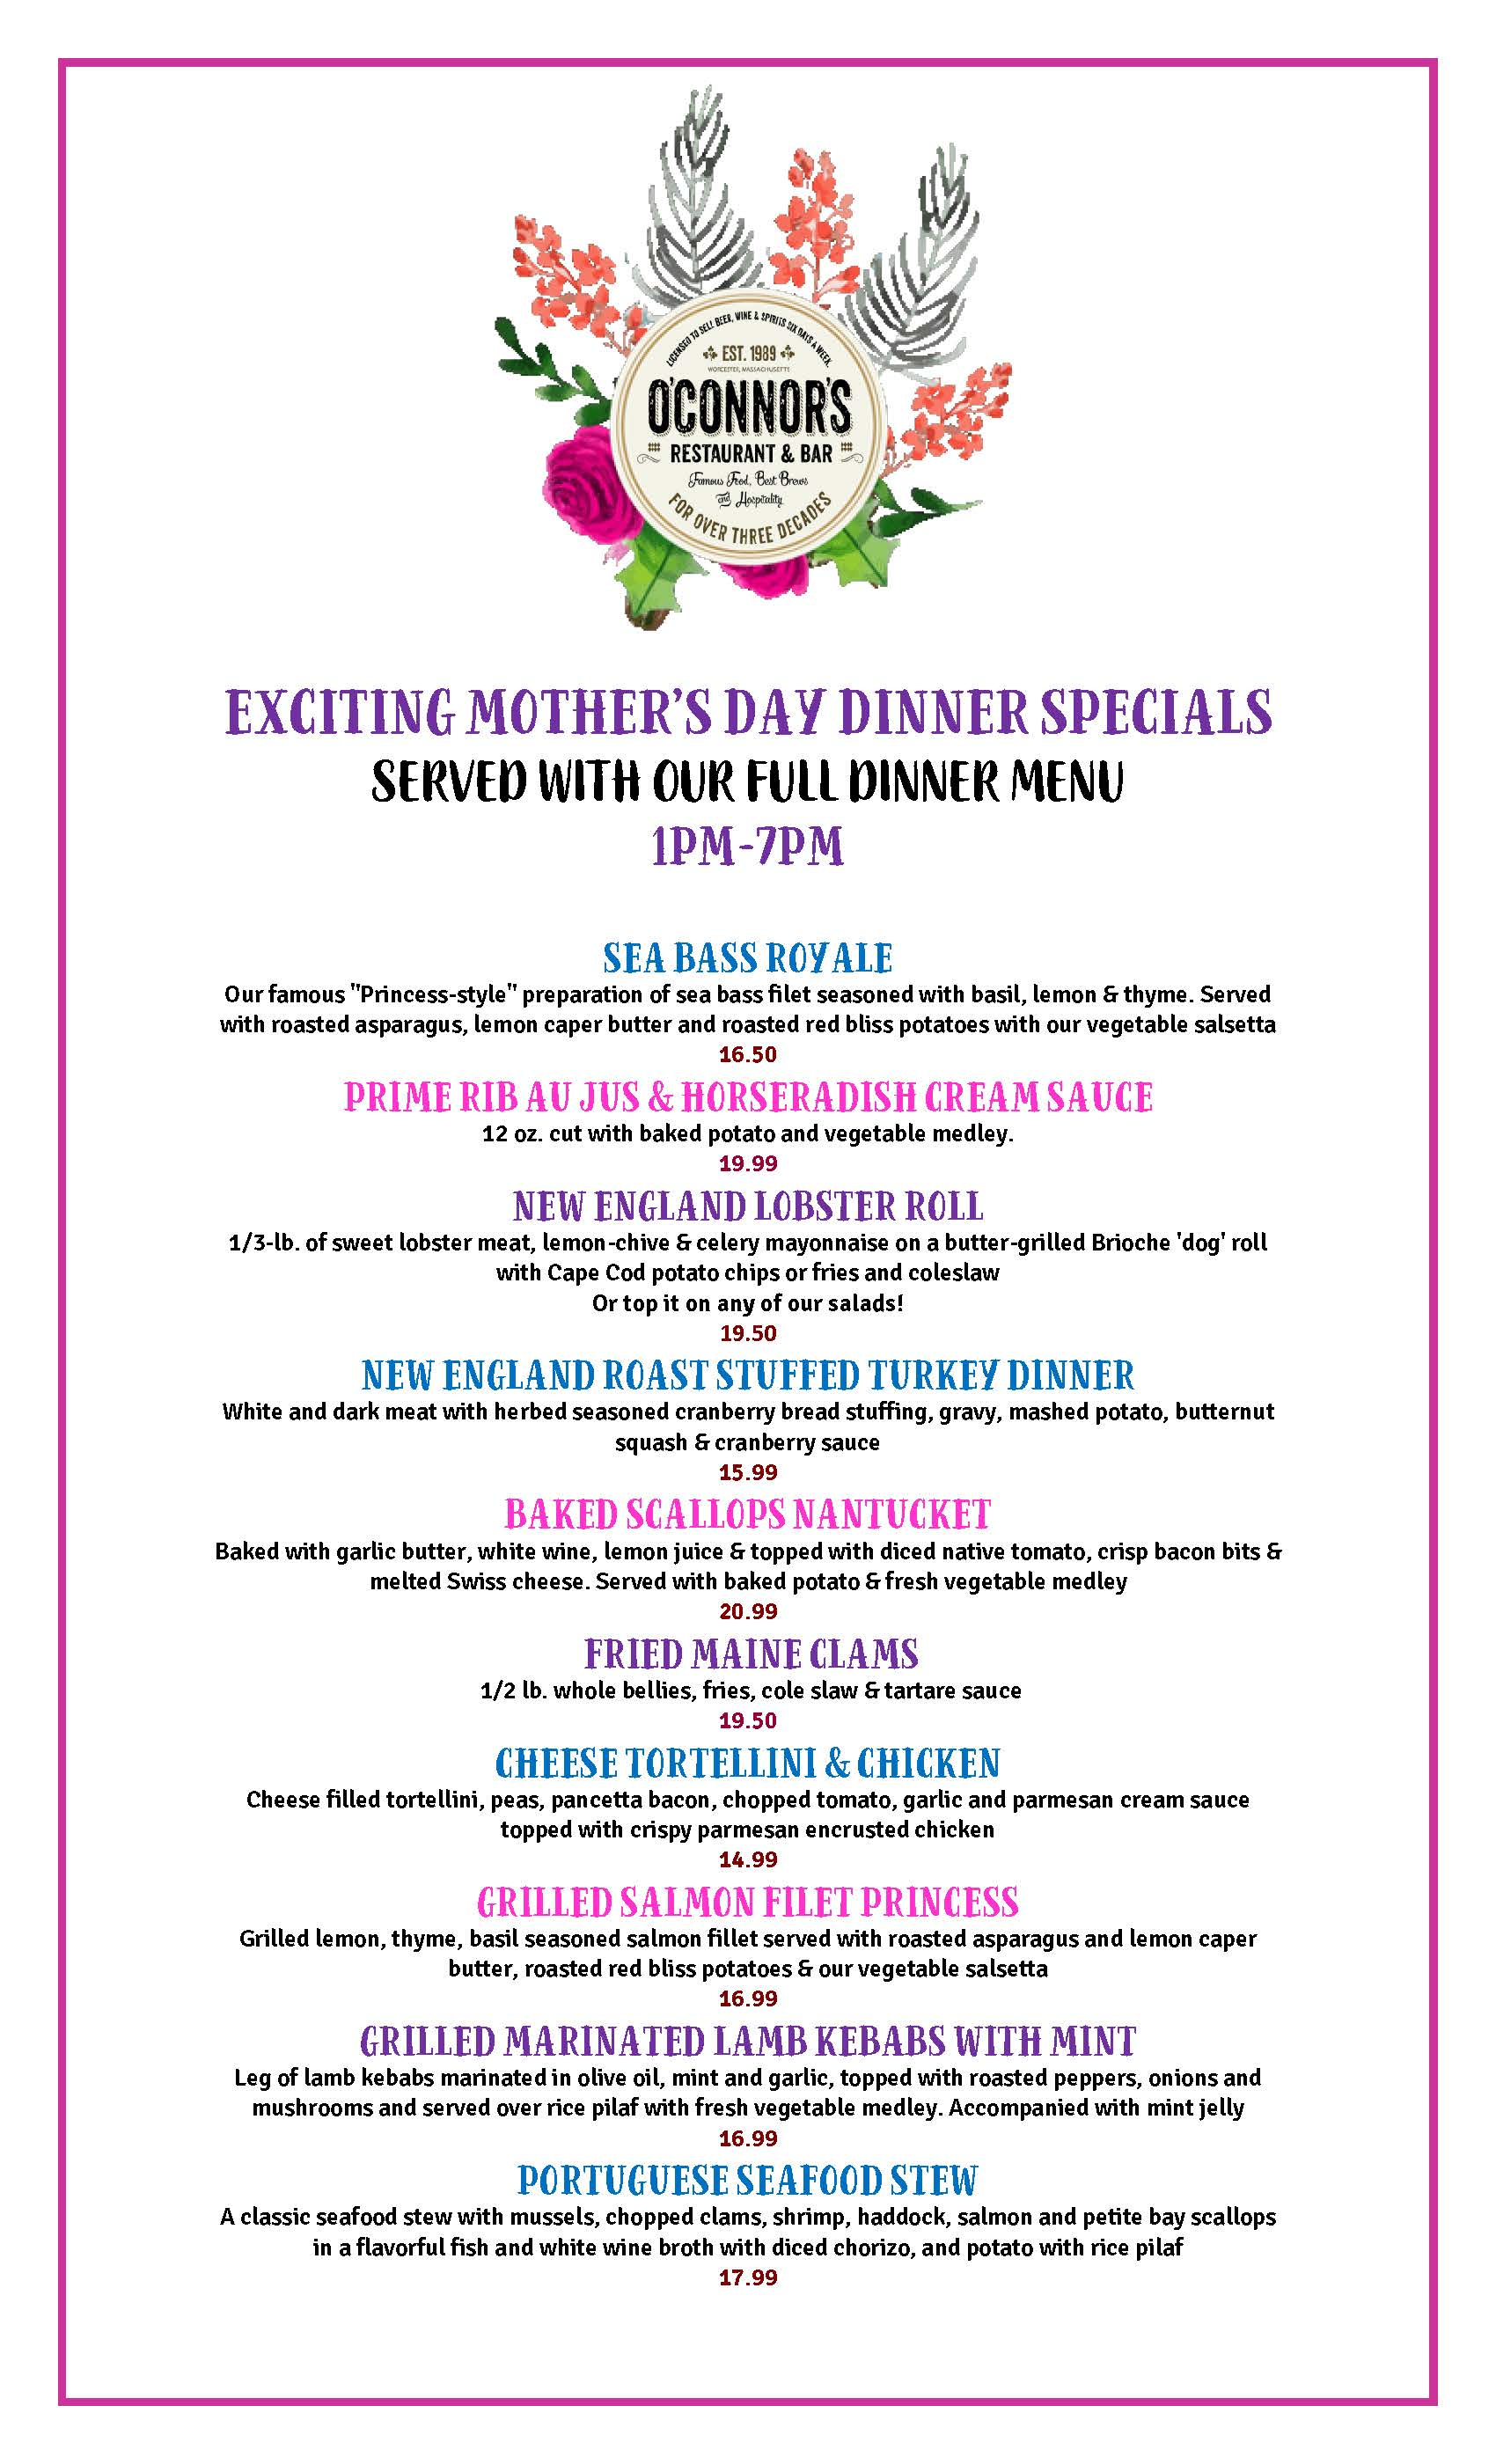 Mother's Day 2019 Dinner Specials